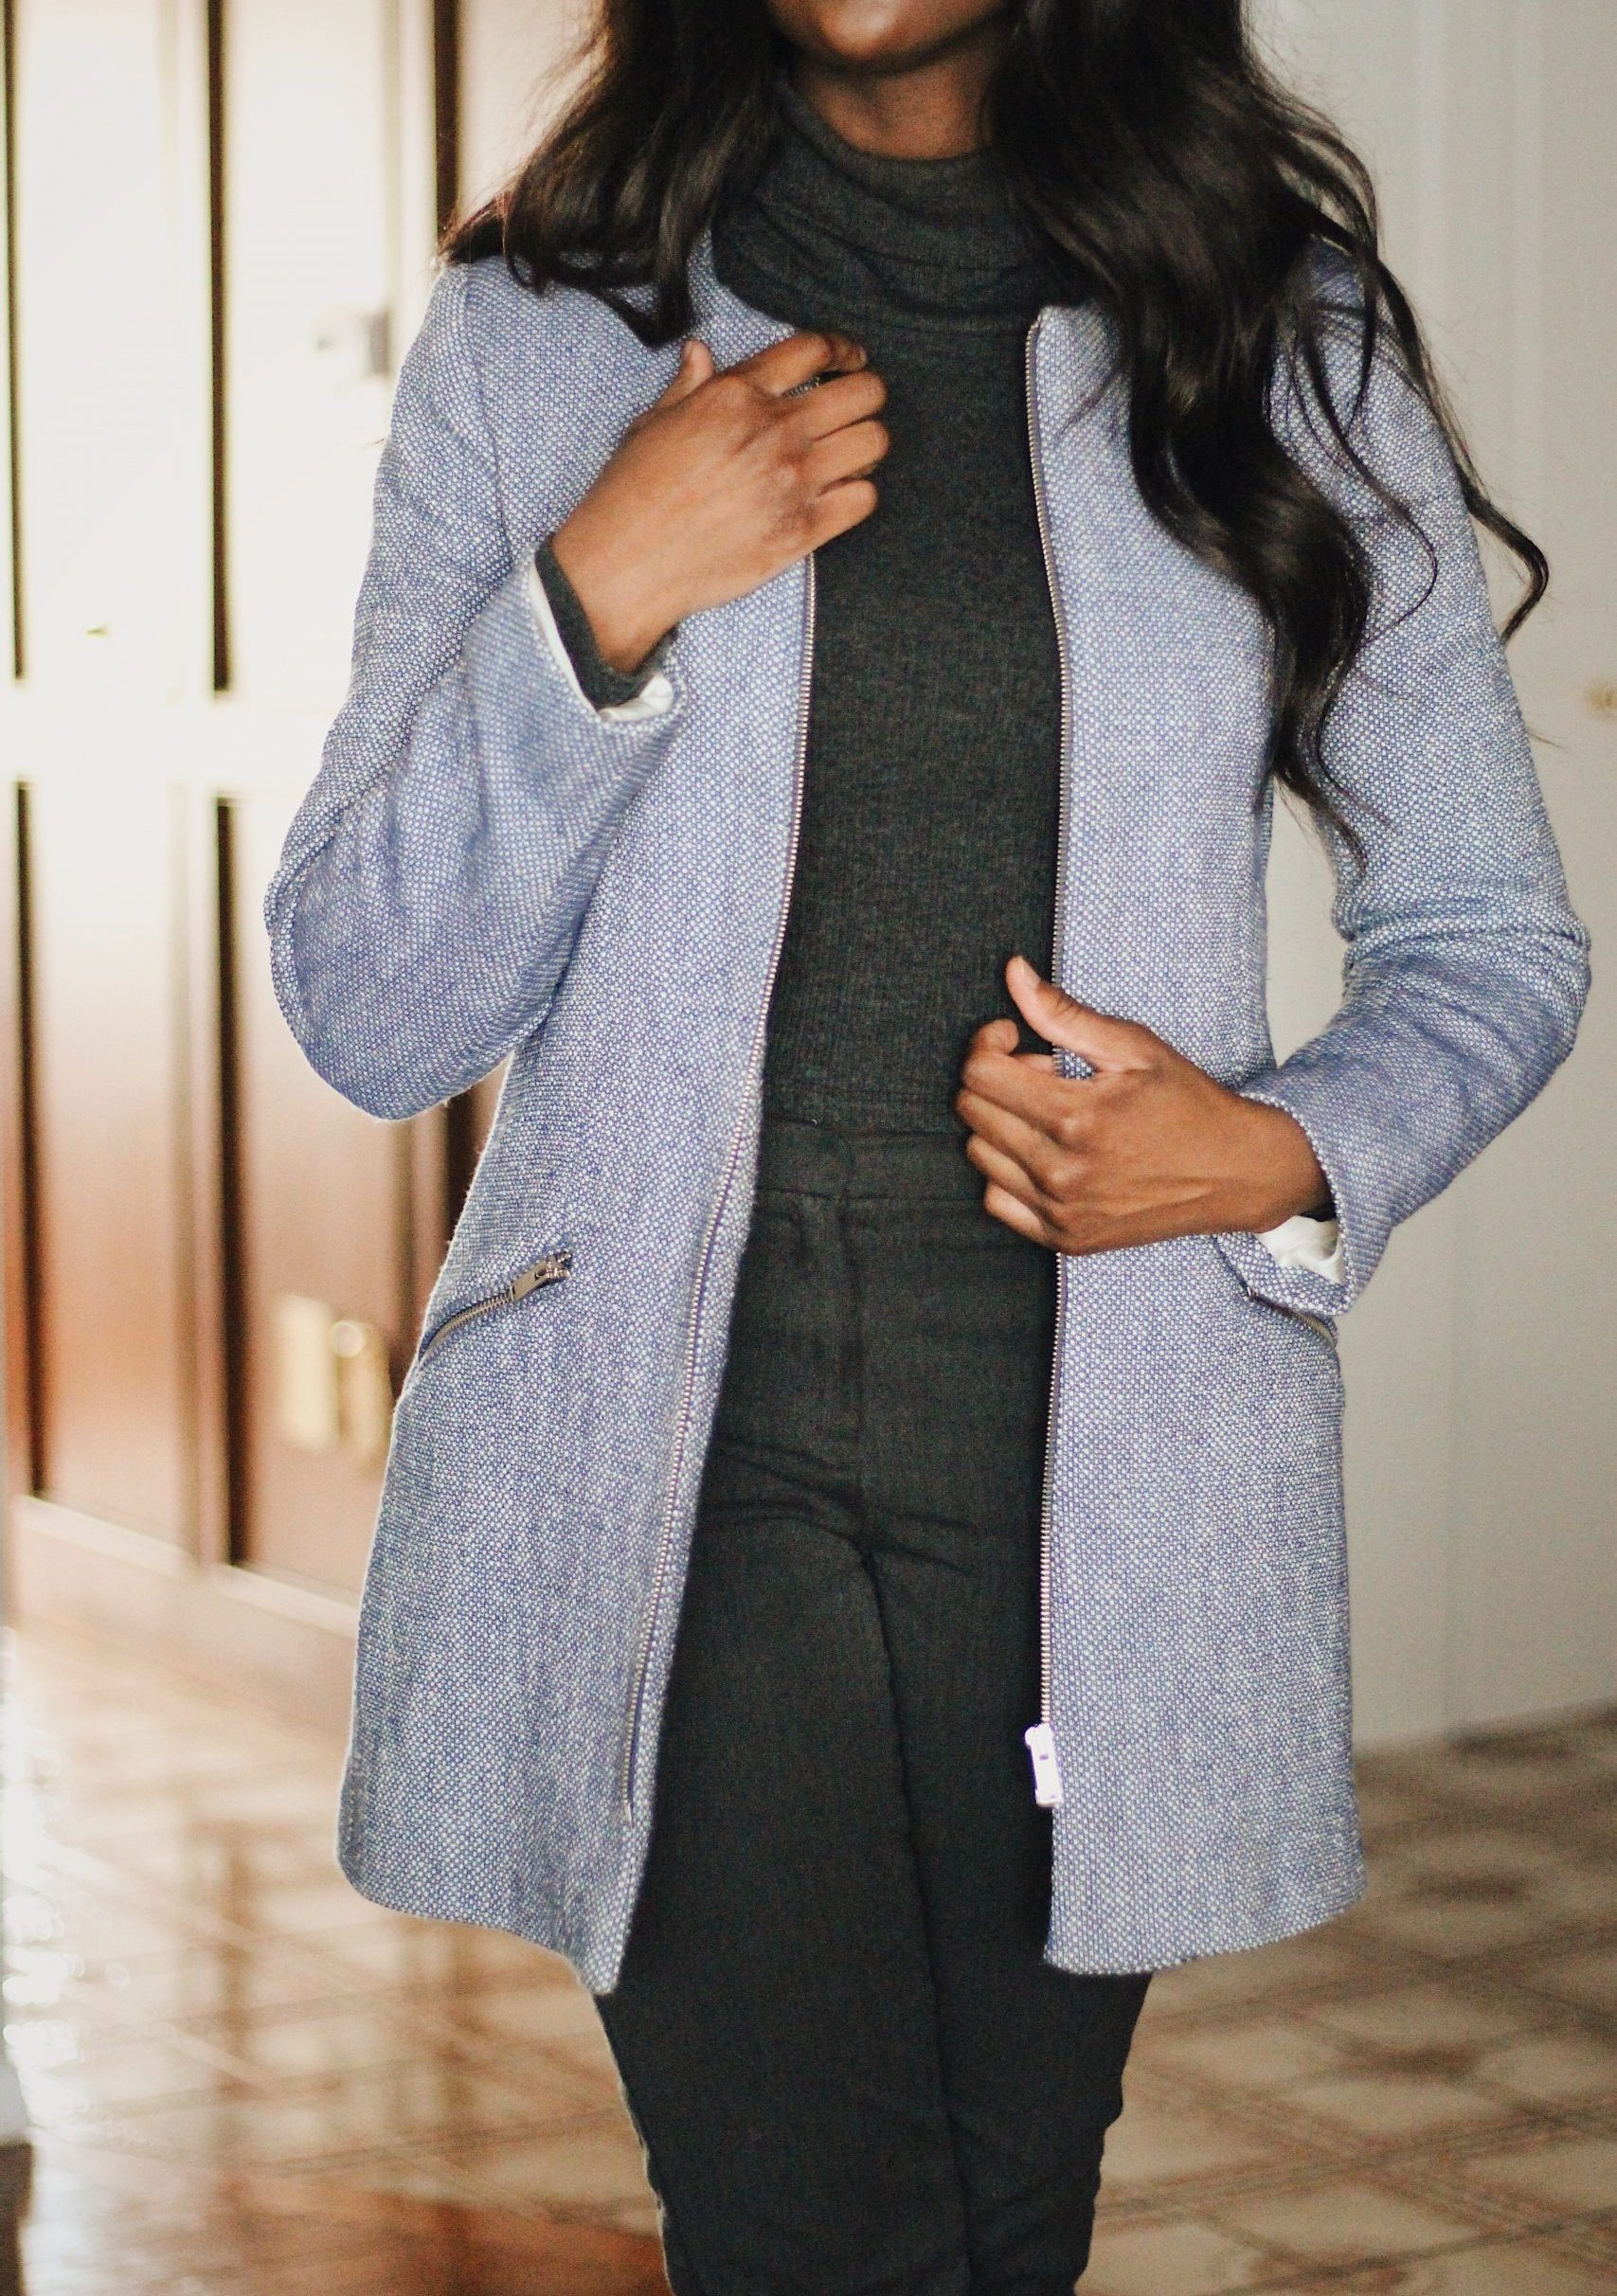 The Quick Guide To Creating Business Casual Outfits